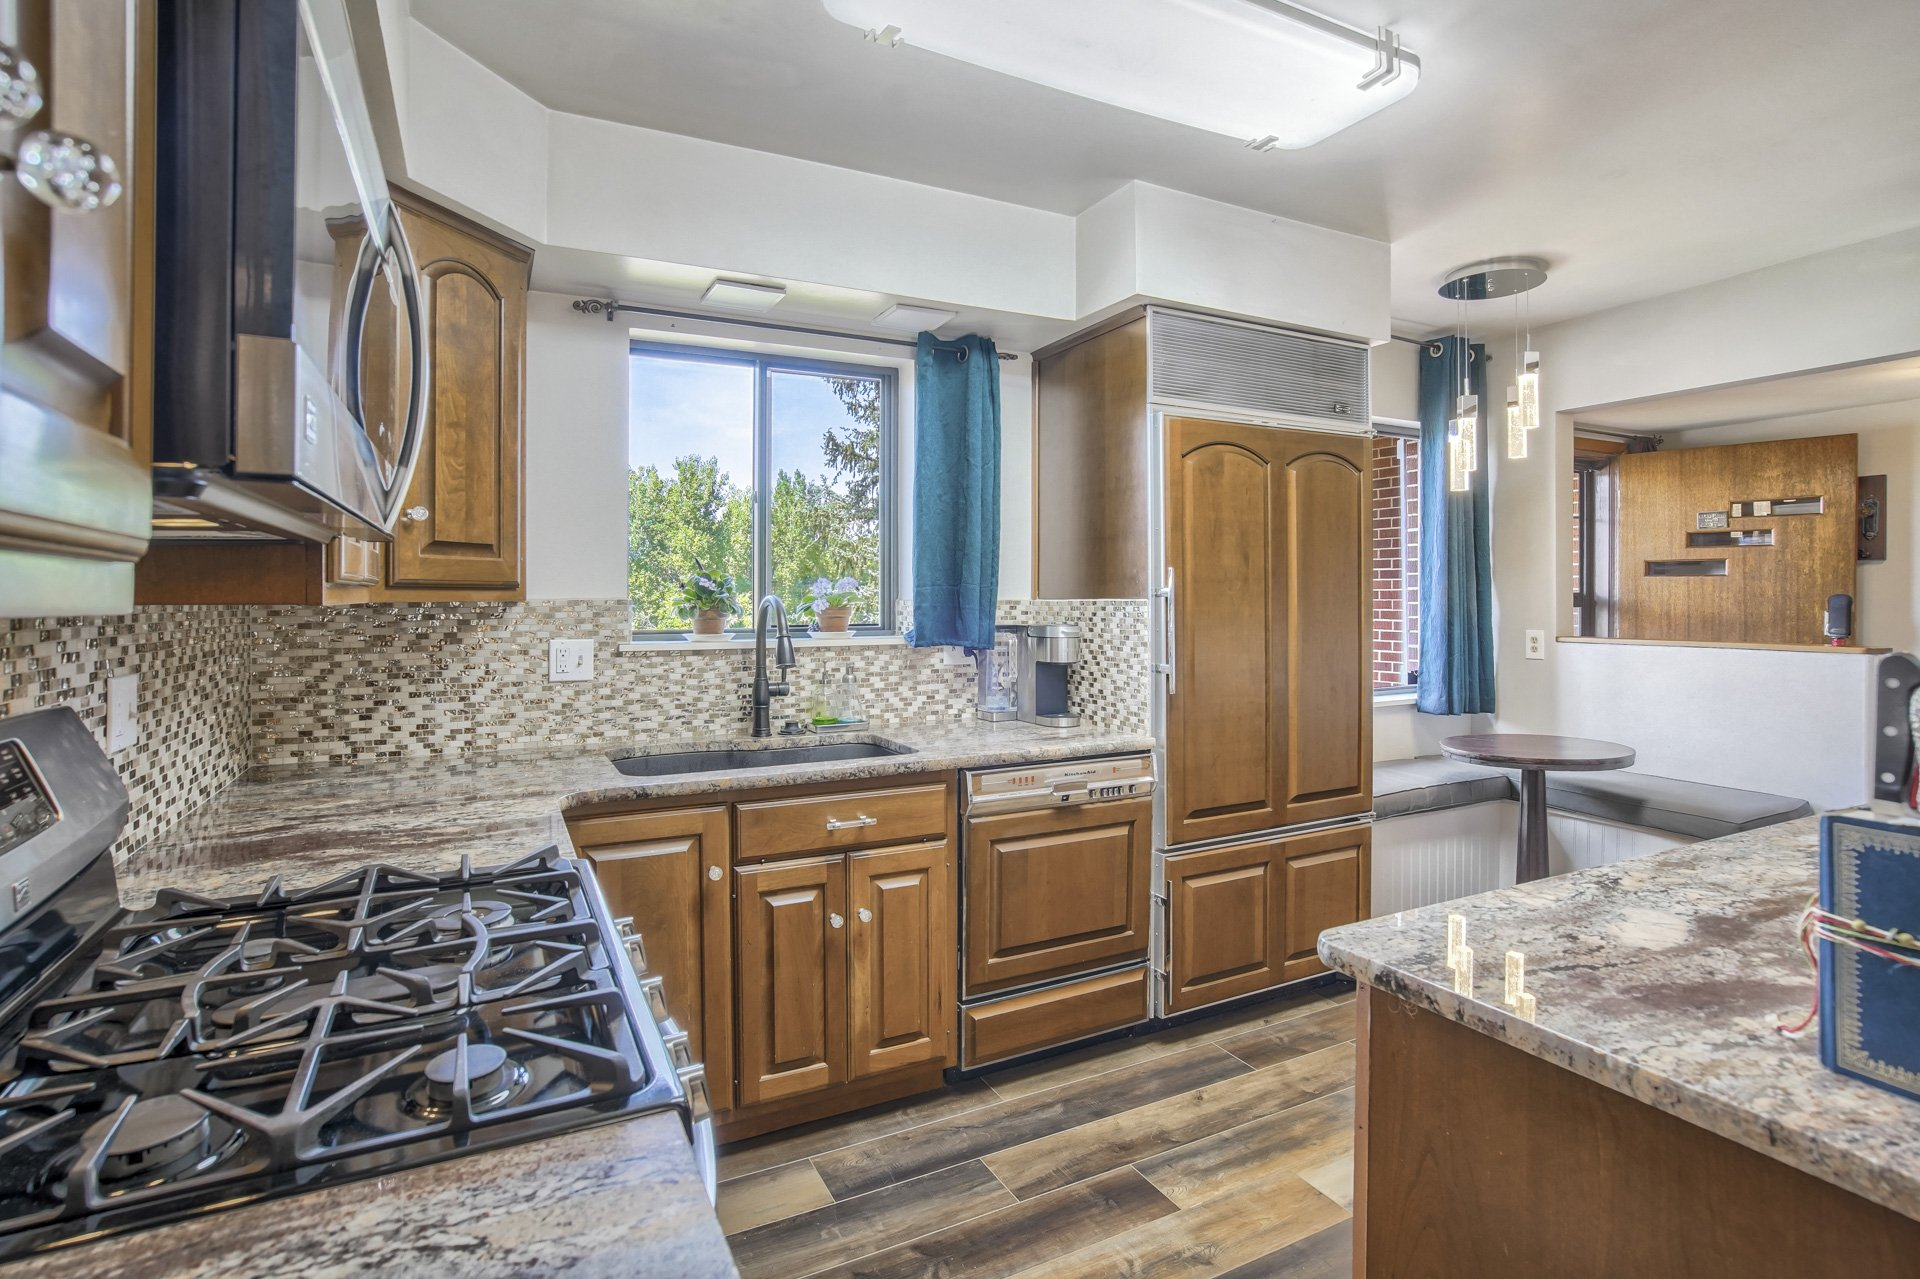 Gas stove and cherry cabinets in kitchen